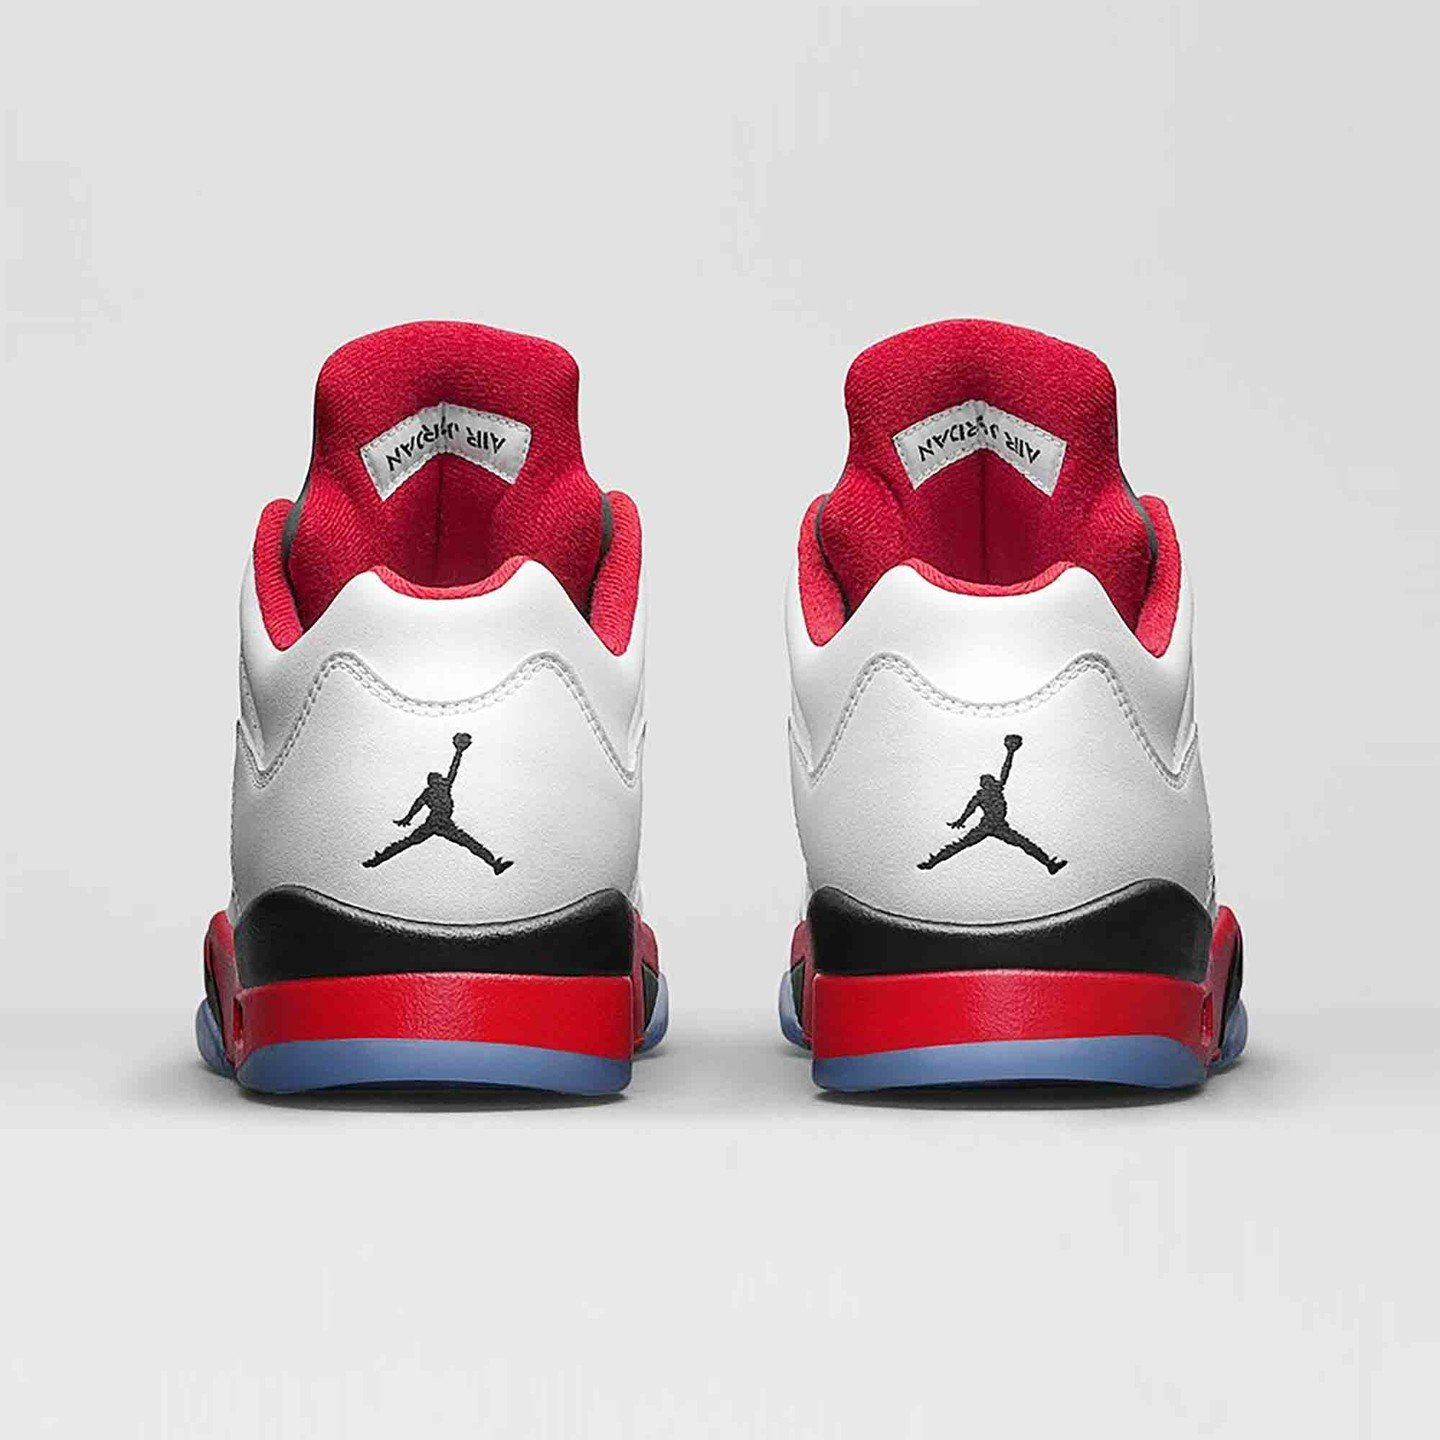 Jordan Air Jordan 5 Low Retro 'Fire Red' White / Fire Red / Black 819171-101-46